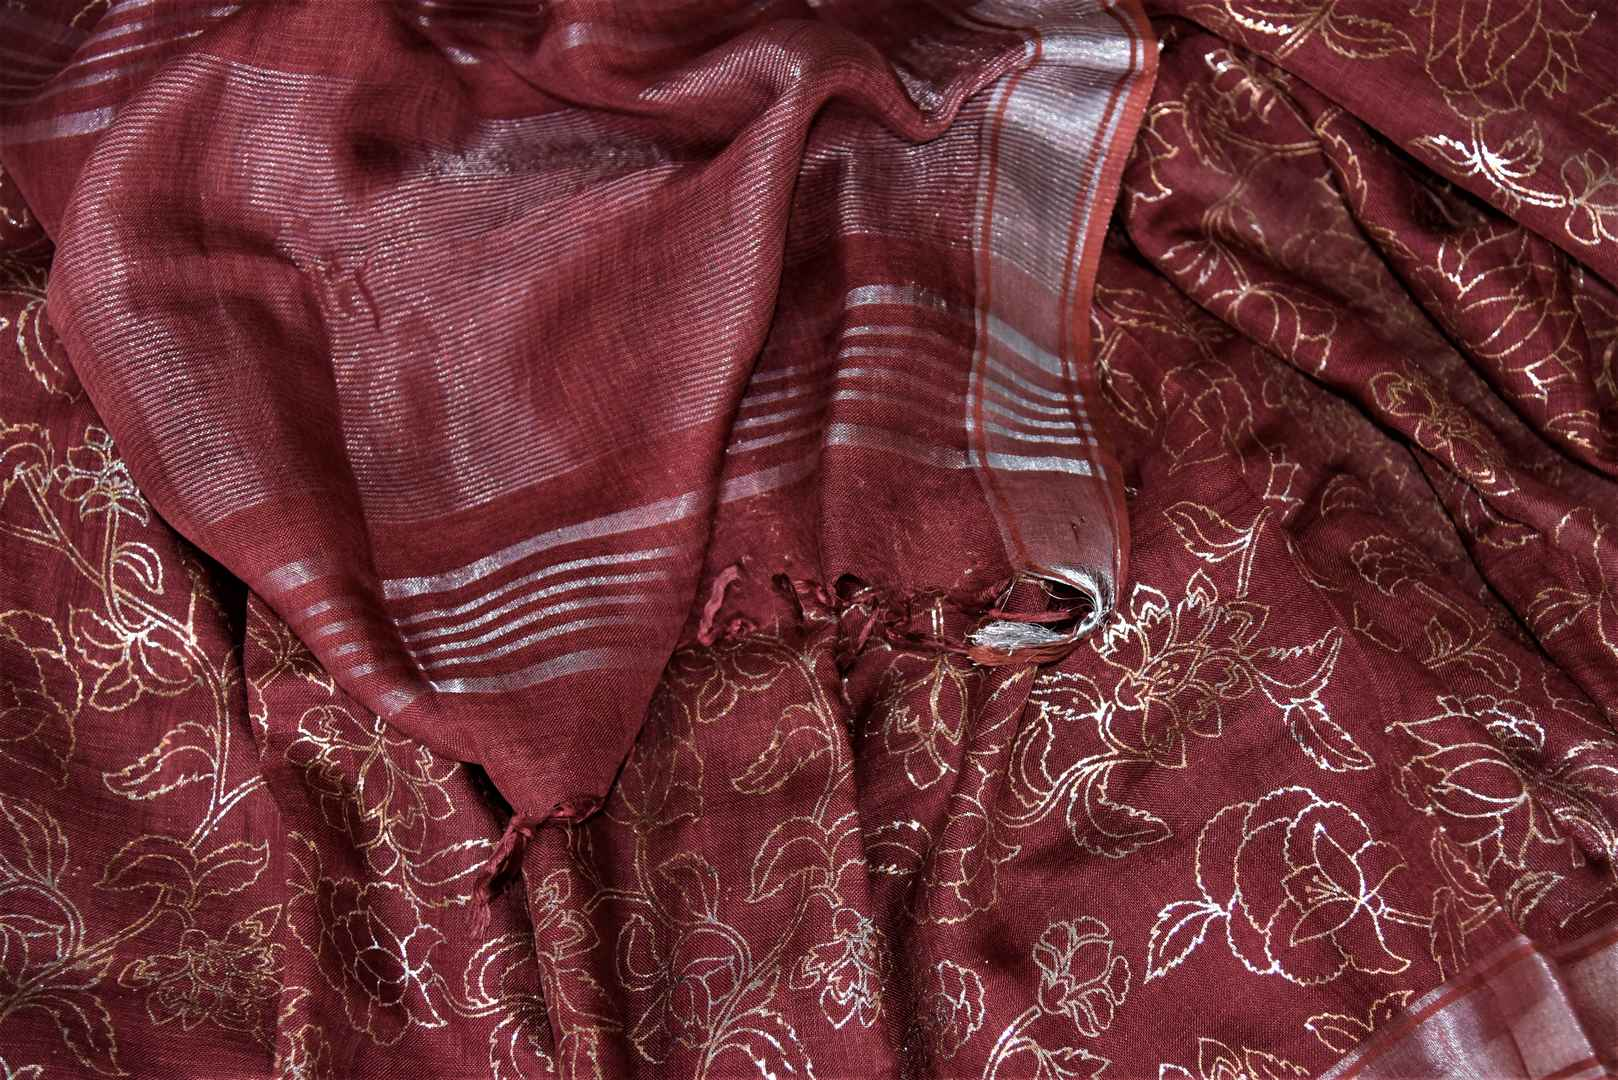 Shop stunning maroon color foil print linen sari online in USA. Keep it light yet festive on special occasions with beautiful handwoven saris, linen sarees from Pure Elegance Indian fashion store in USA.-details